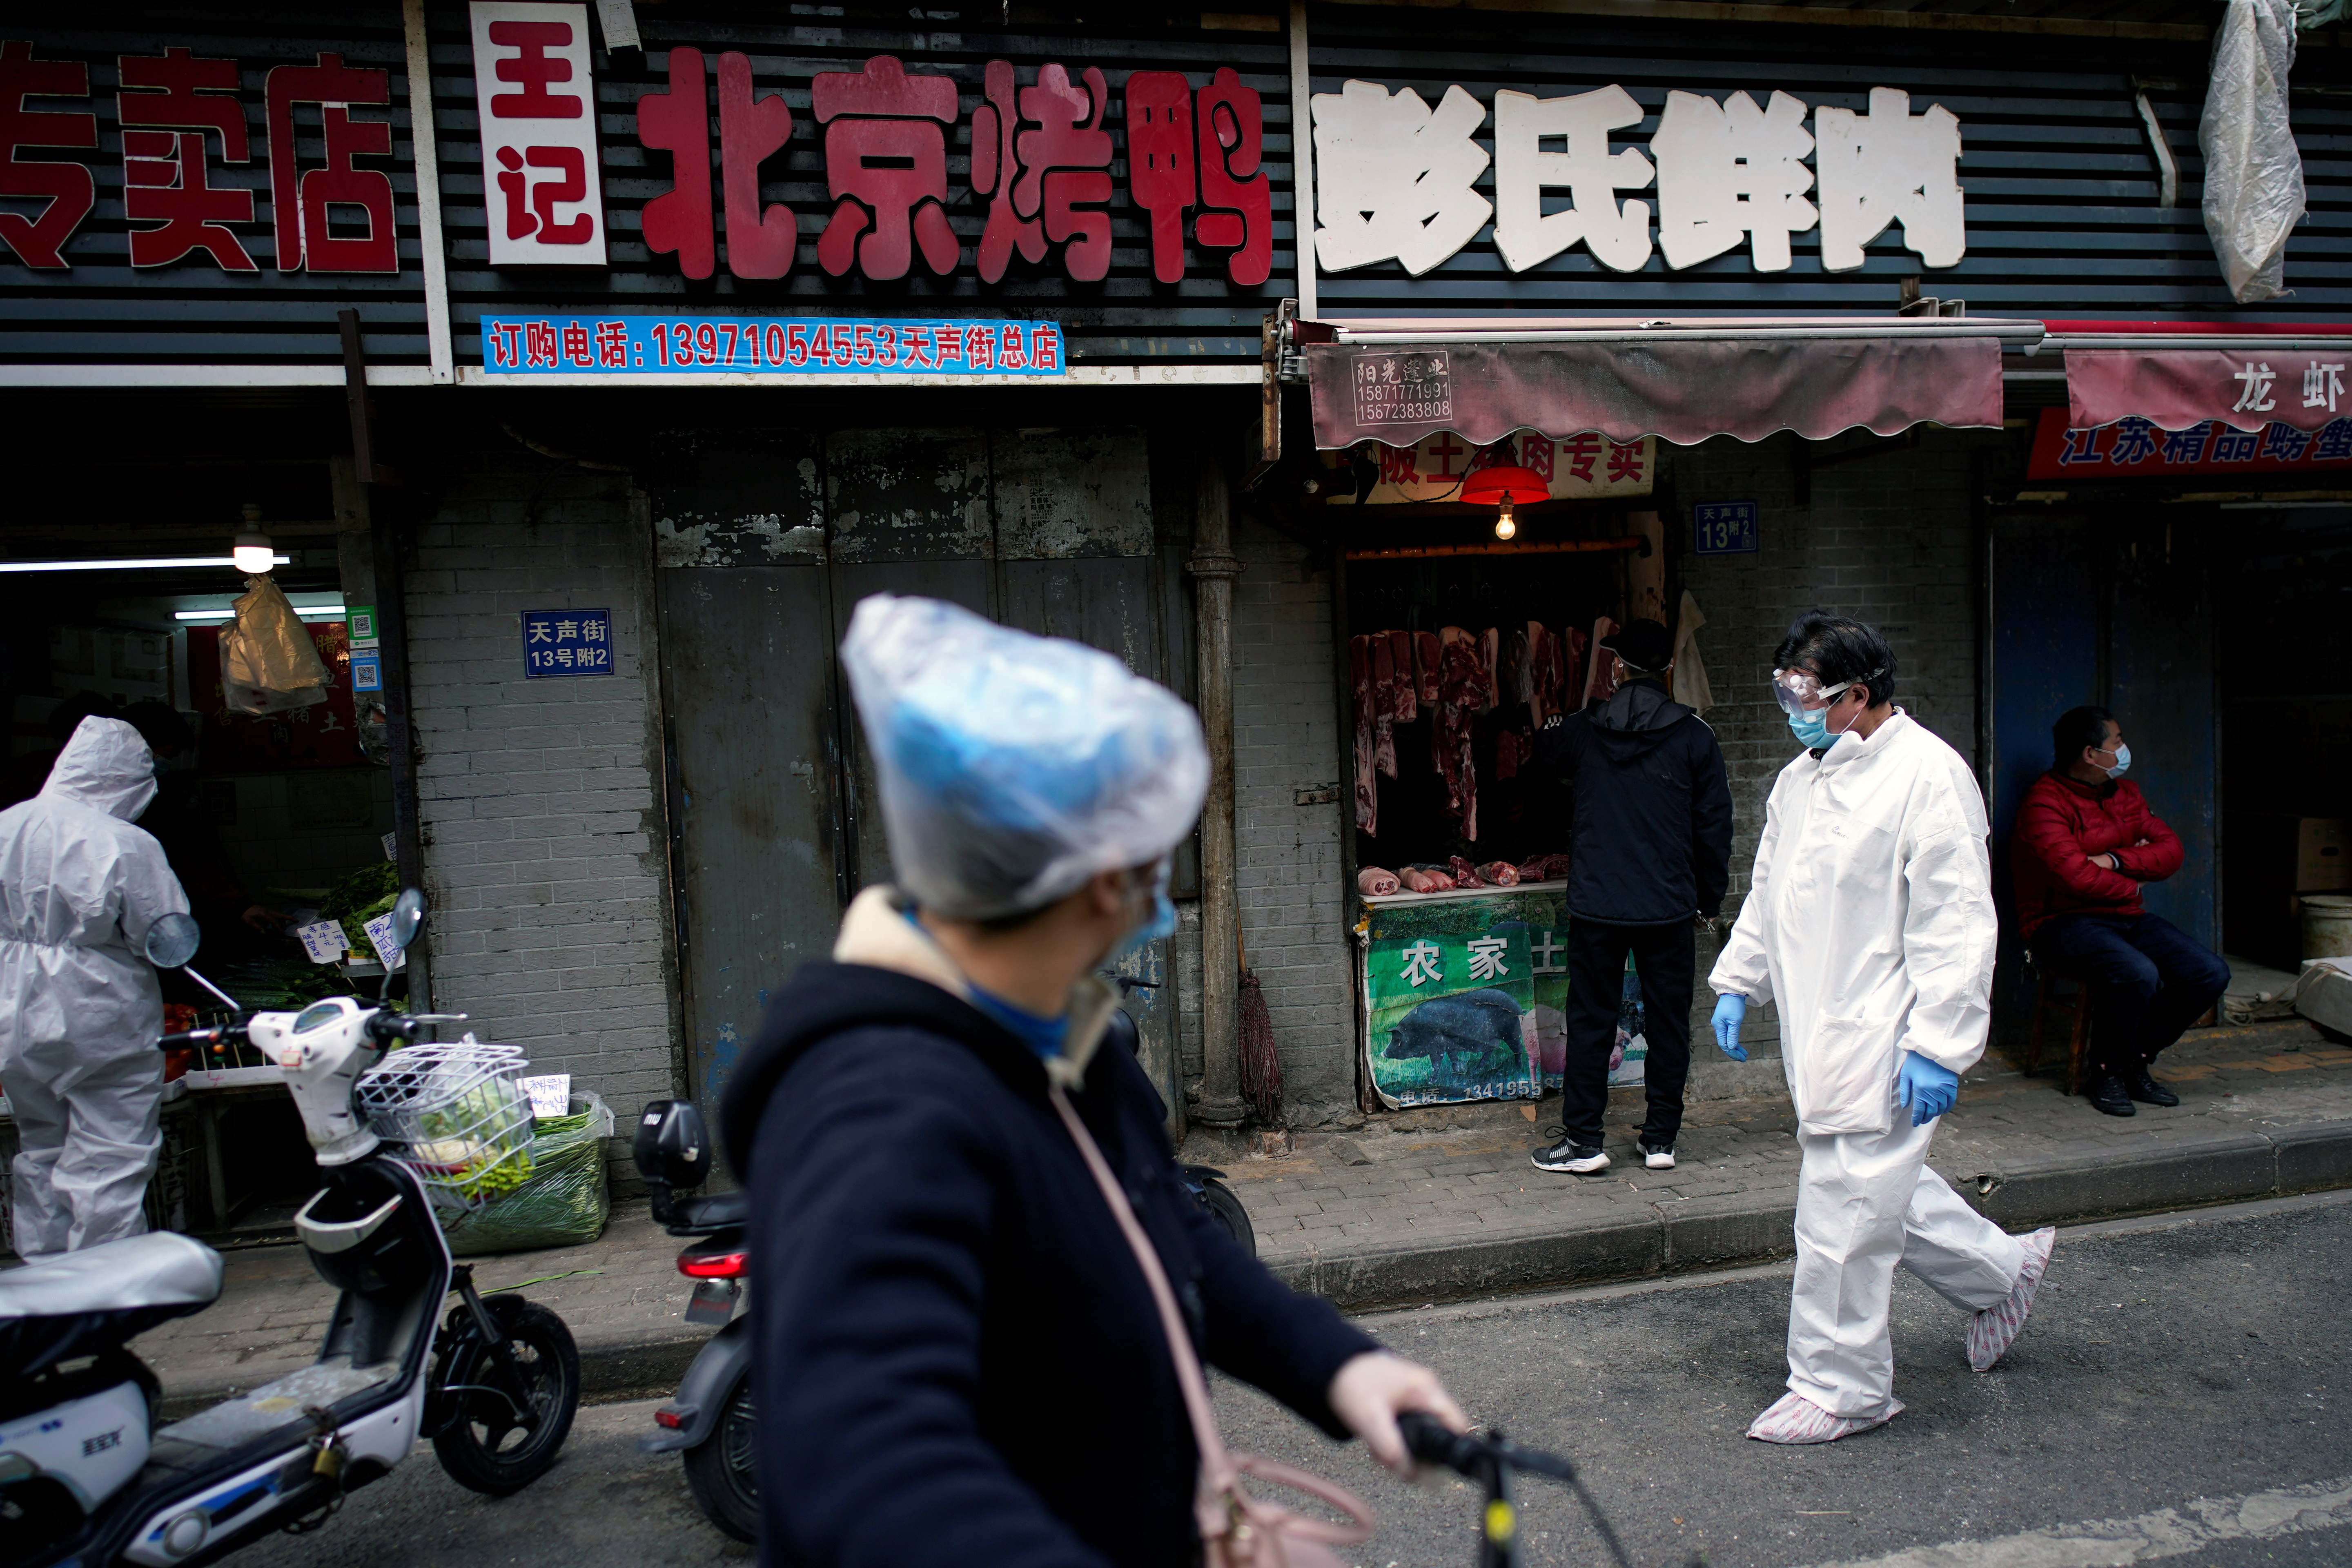 People wearing protective suits is seen at a street market in Wuhan, Hubei province, the epicentre of China's novel coronavirus disease (COVID-19) outbreak, April 6, 2020. Photo: Reuters